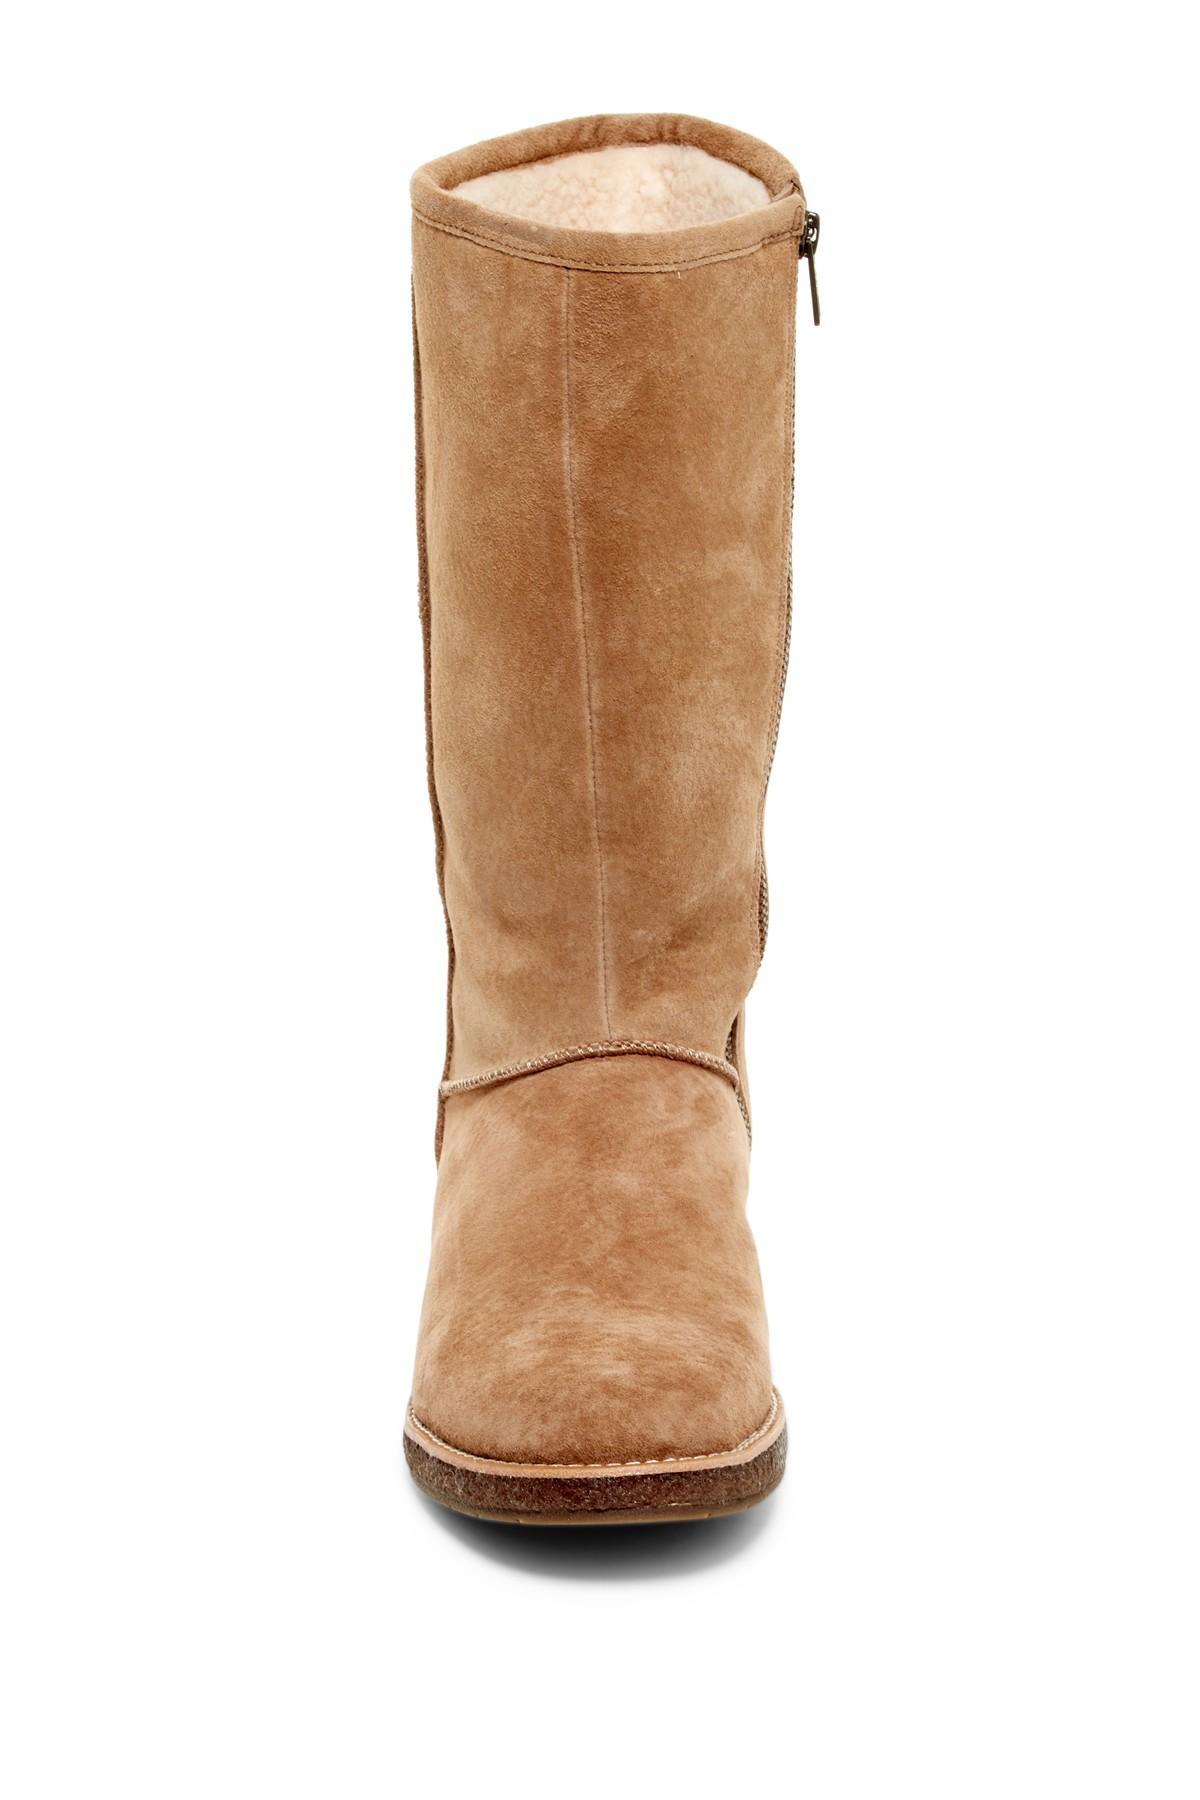 632174b47a4 Uggpure Lined Boots - cheap watches mgc-gas.com